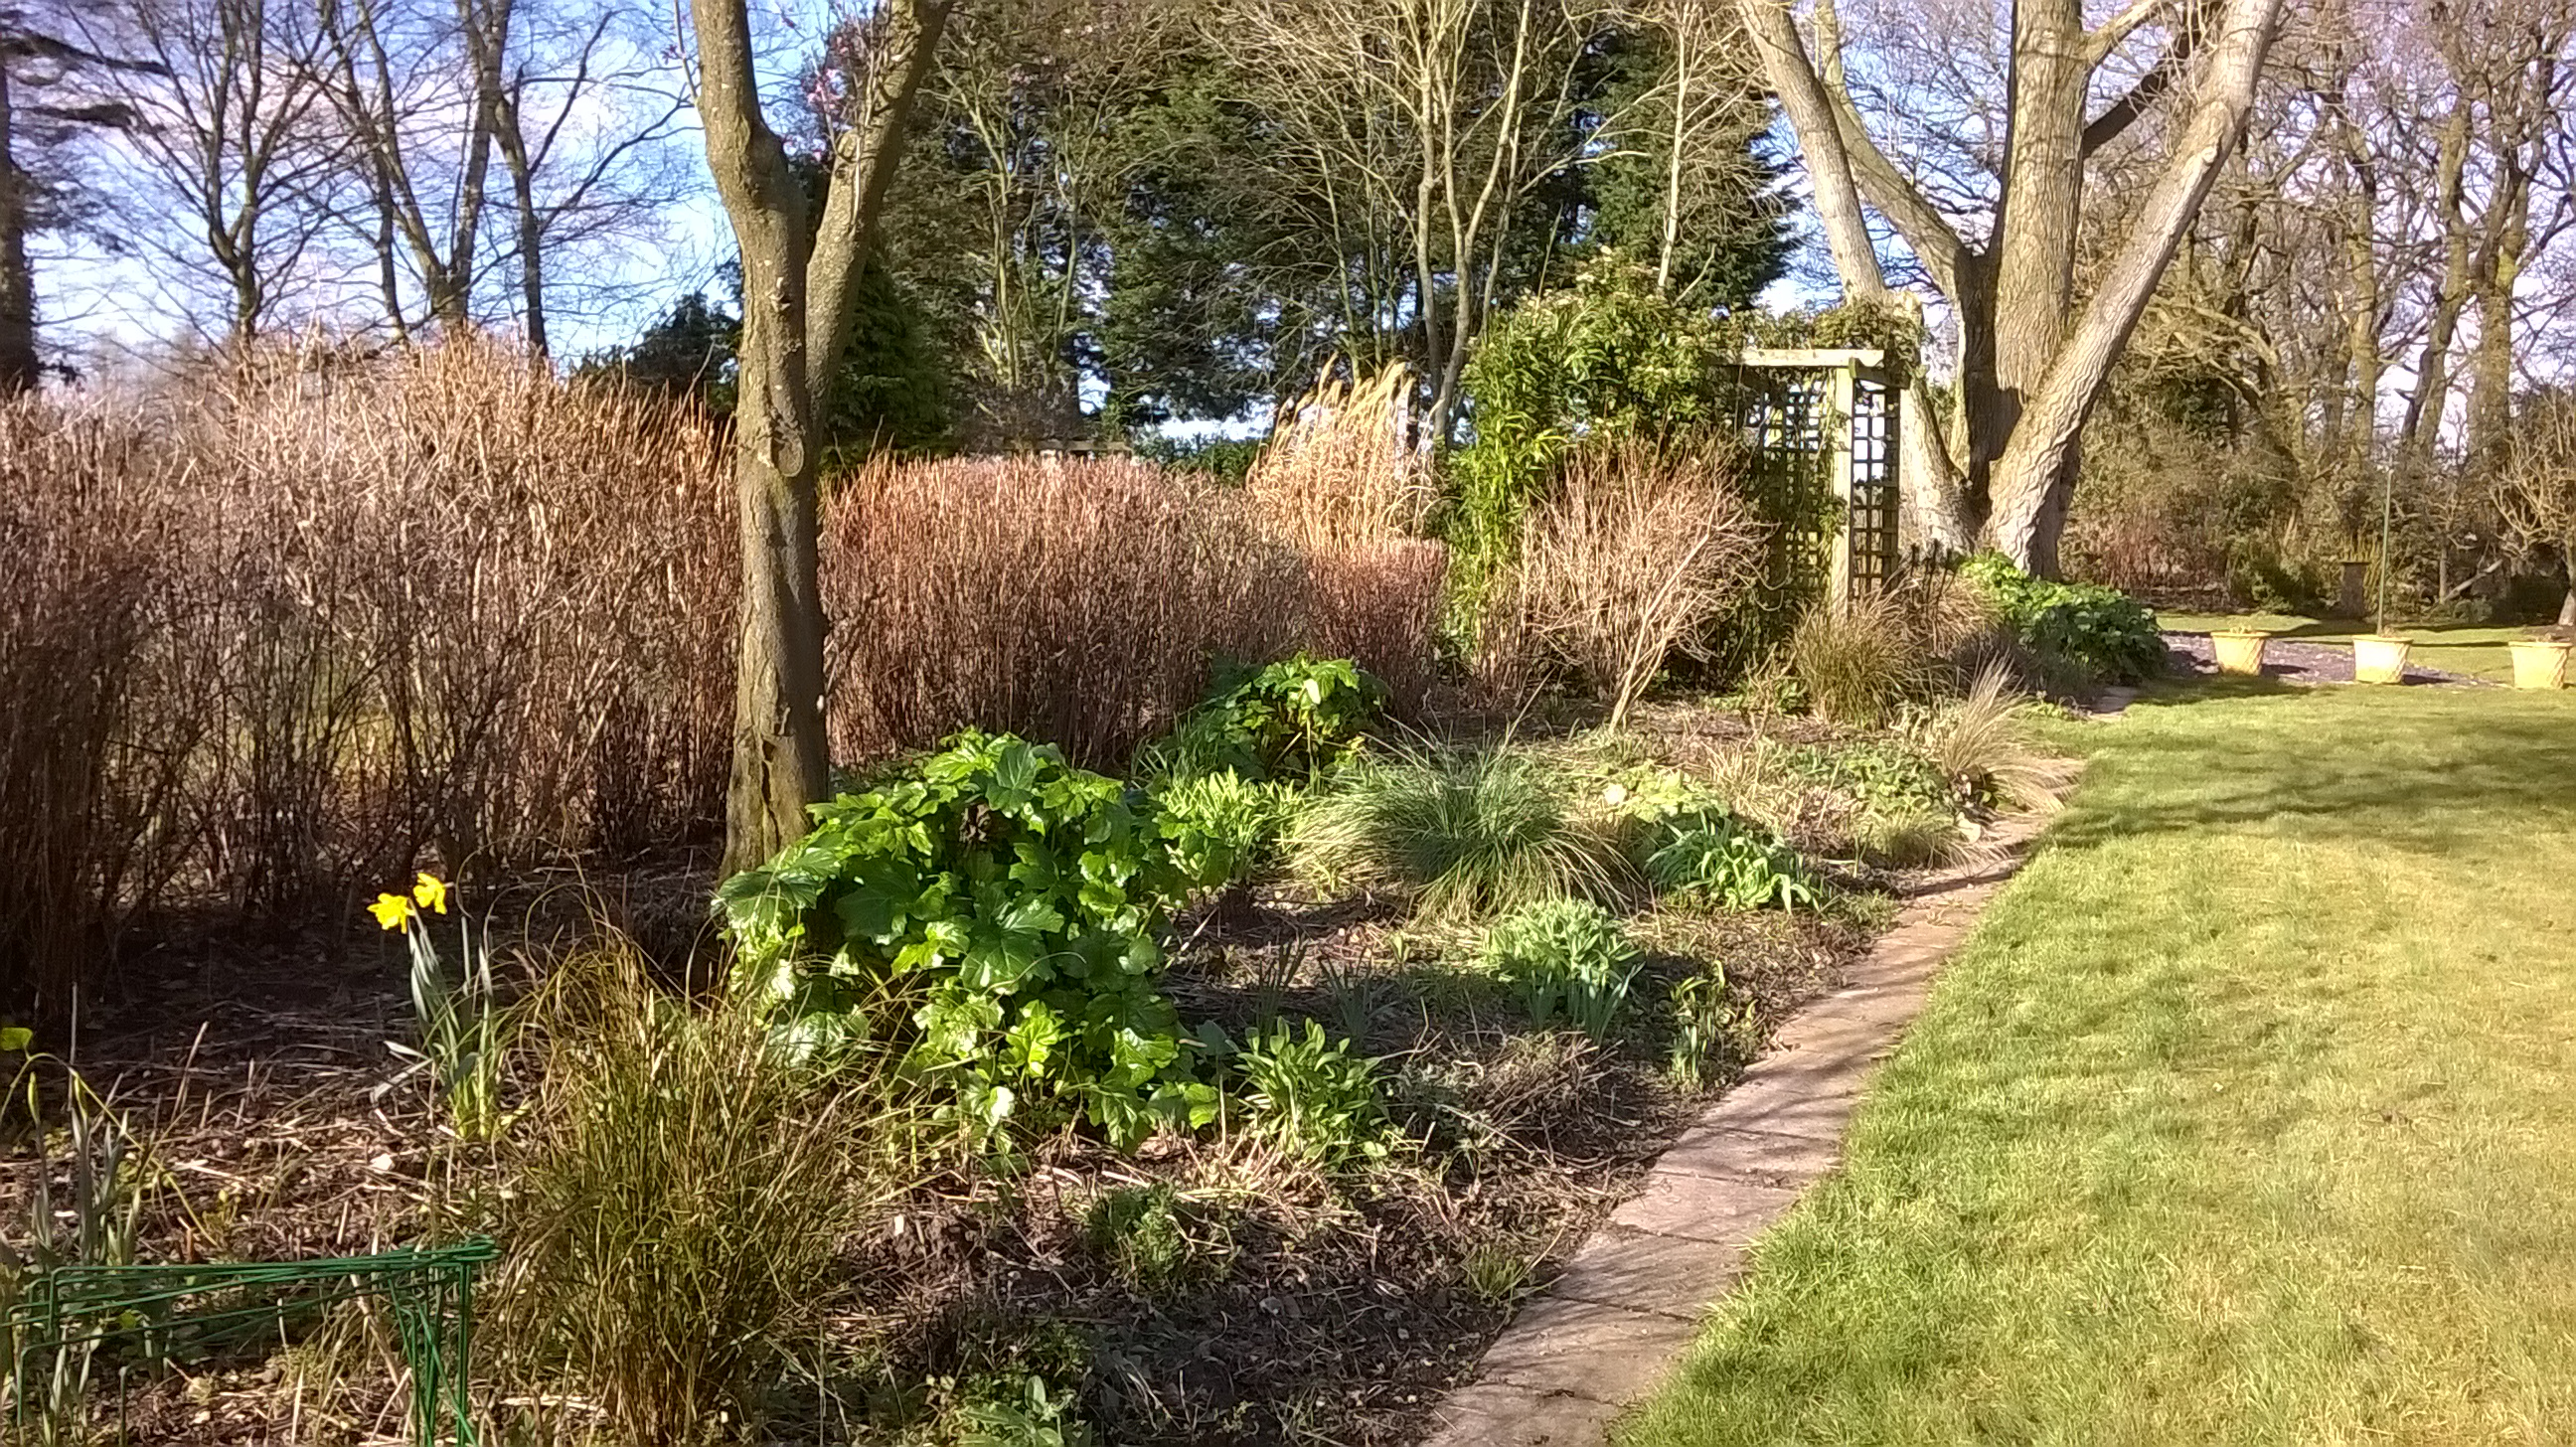 Borders cleared and ready for weeding and soil tickling...